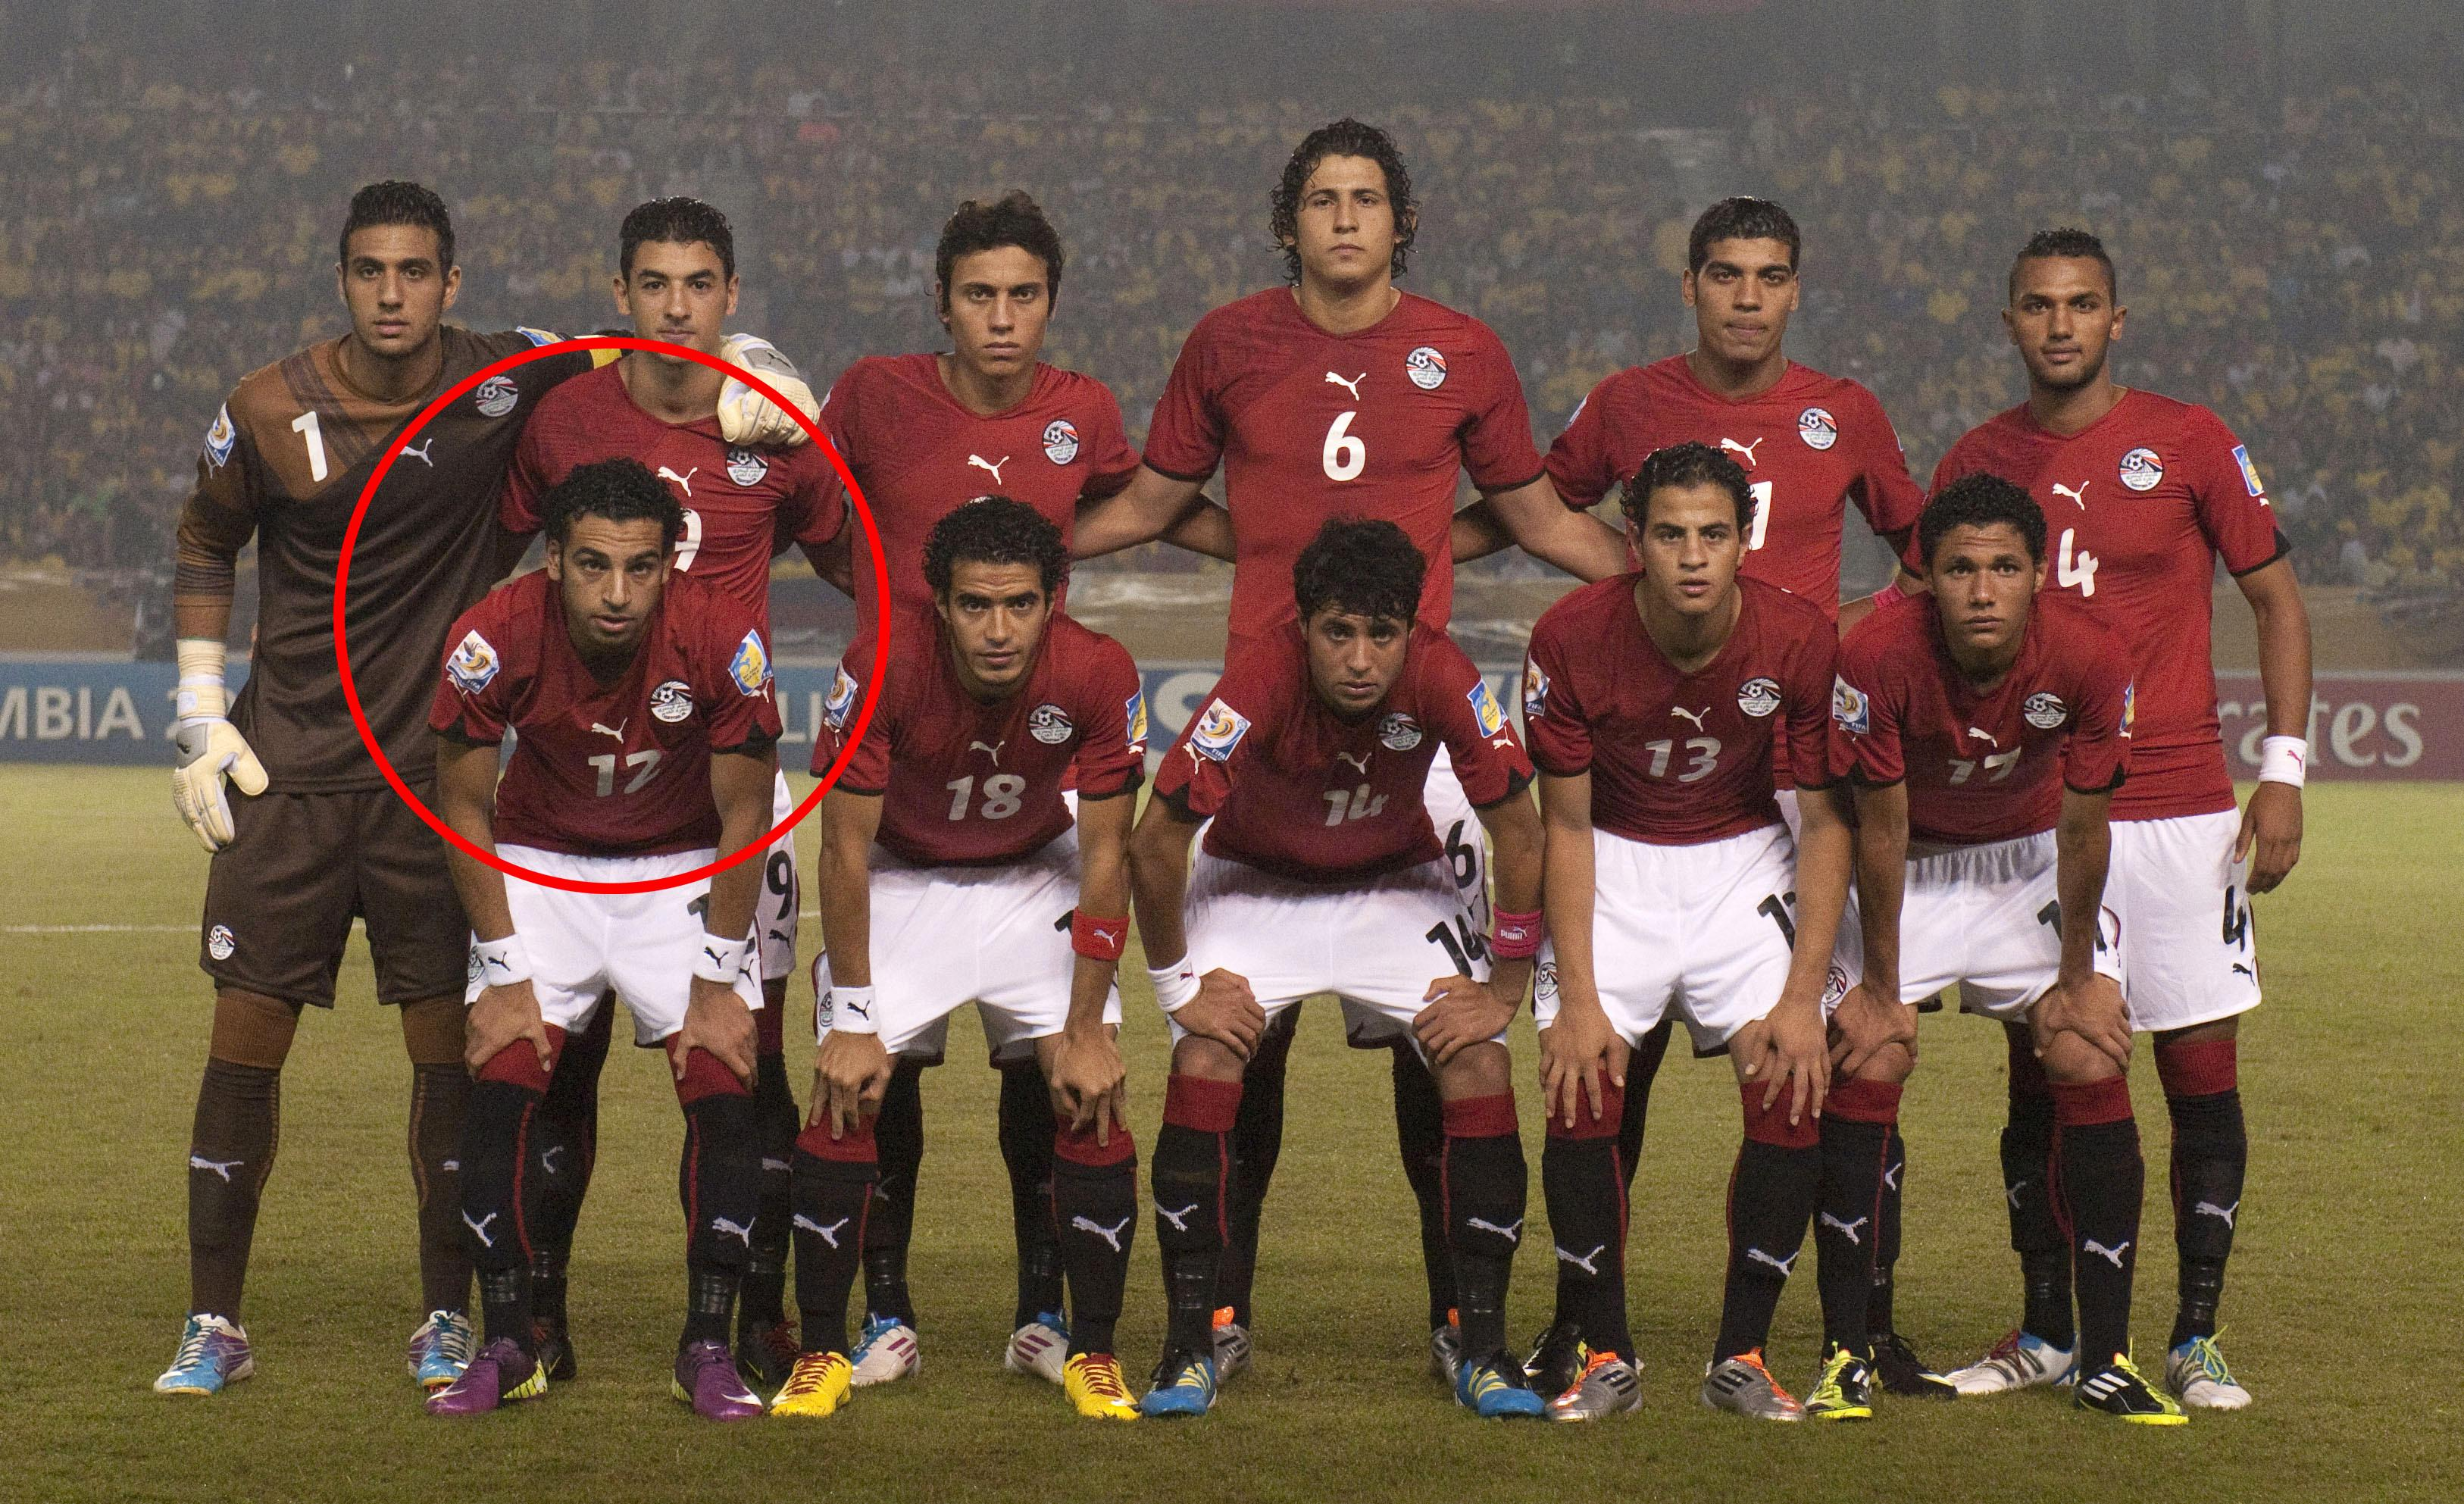 Representing Egypt's Under-20s